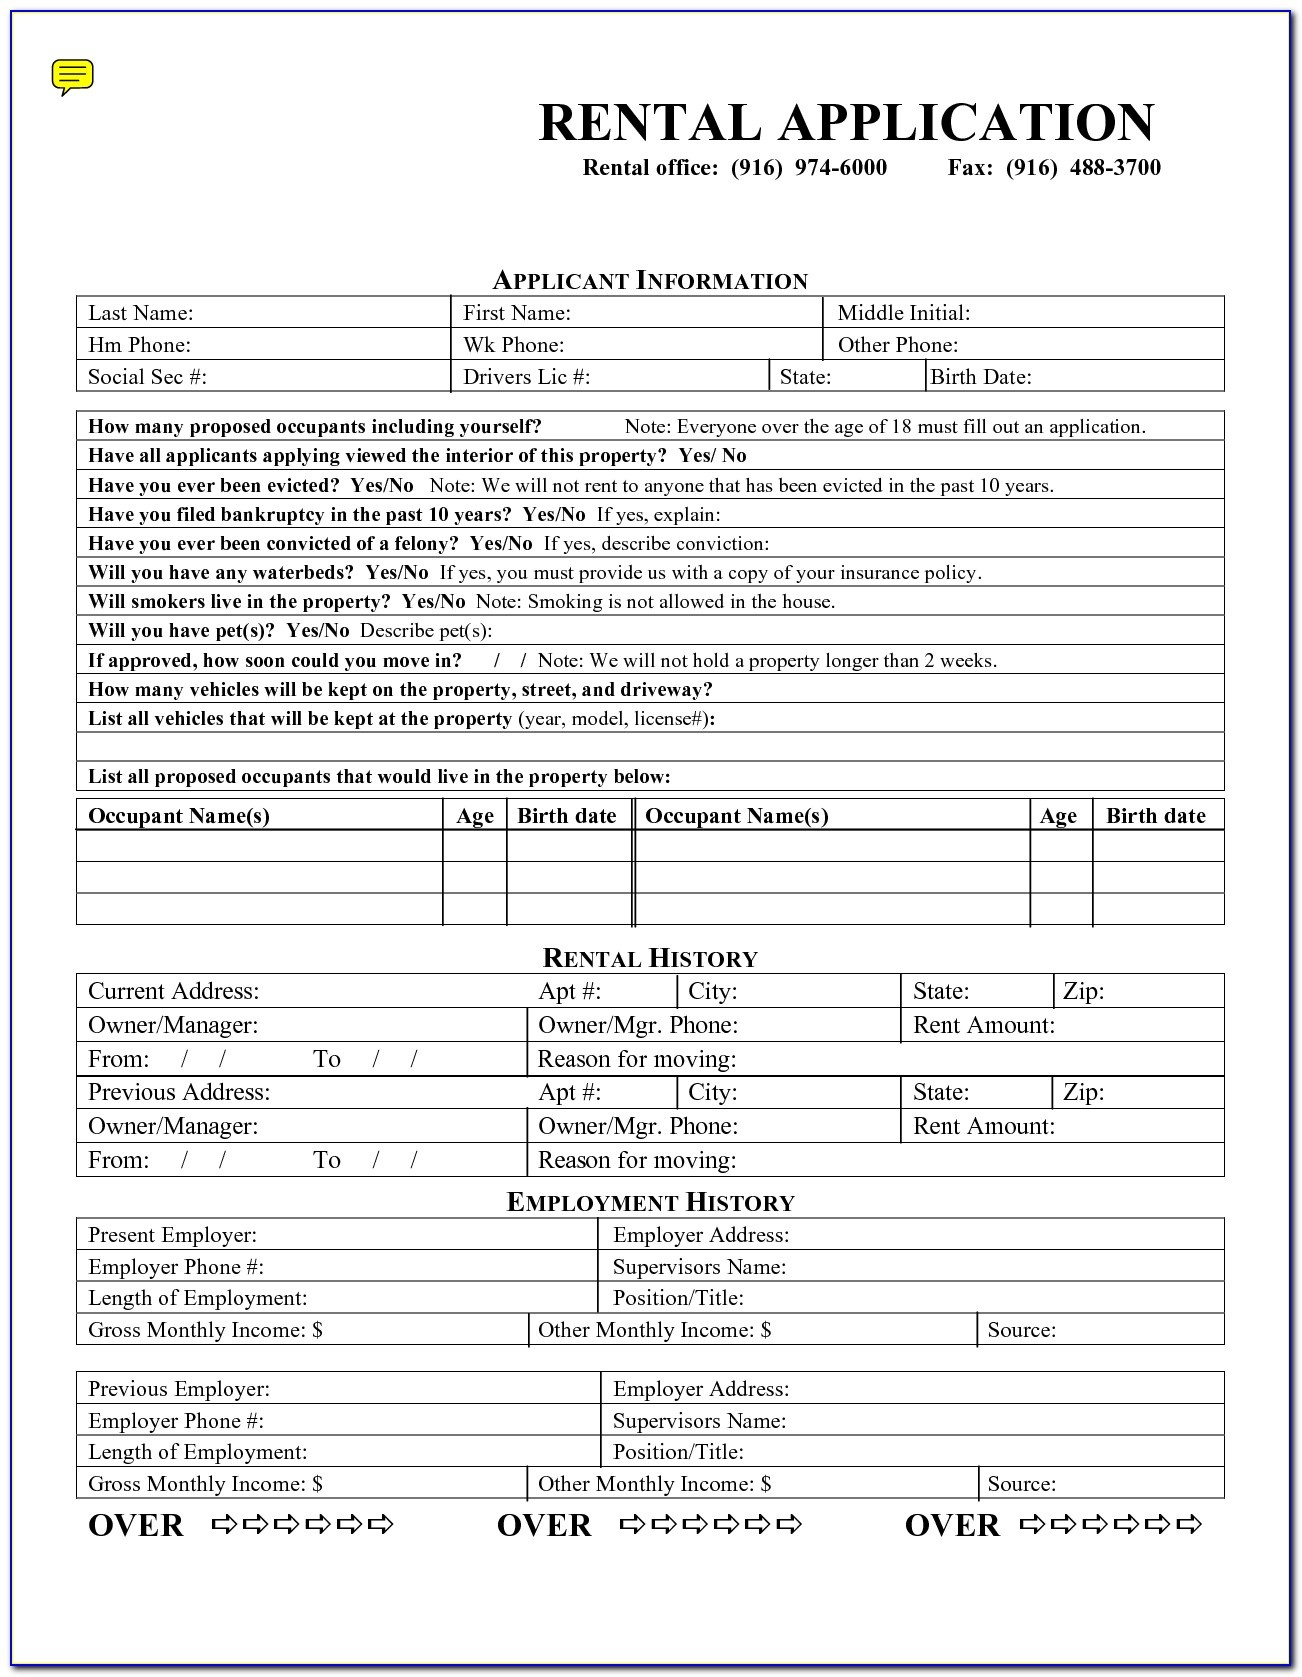 Rental Application Forms Free Printable - Form : Resume Examples - Free Printable Rental Application Form